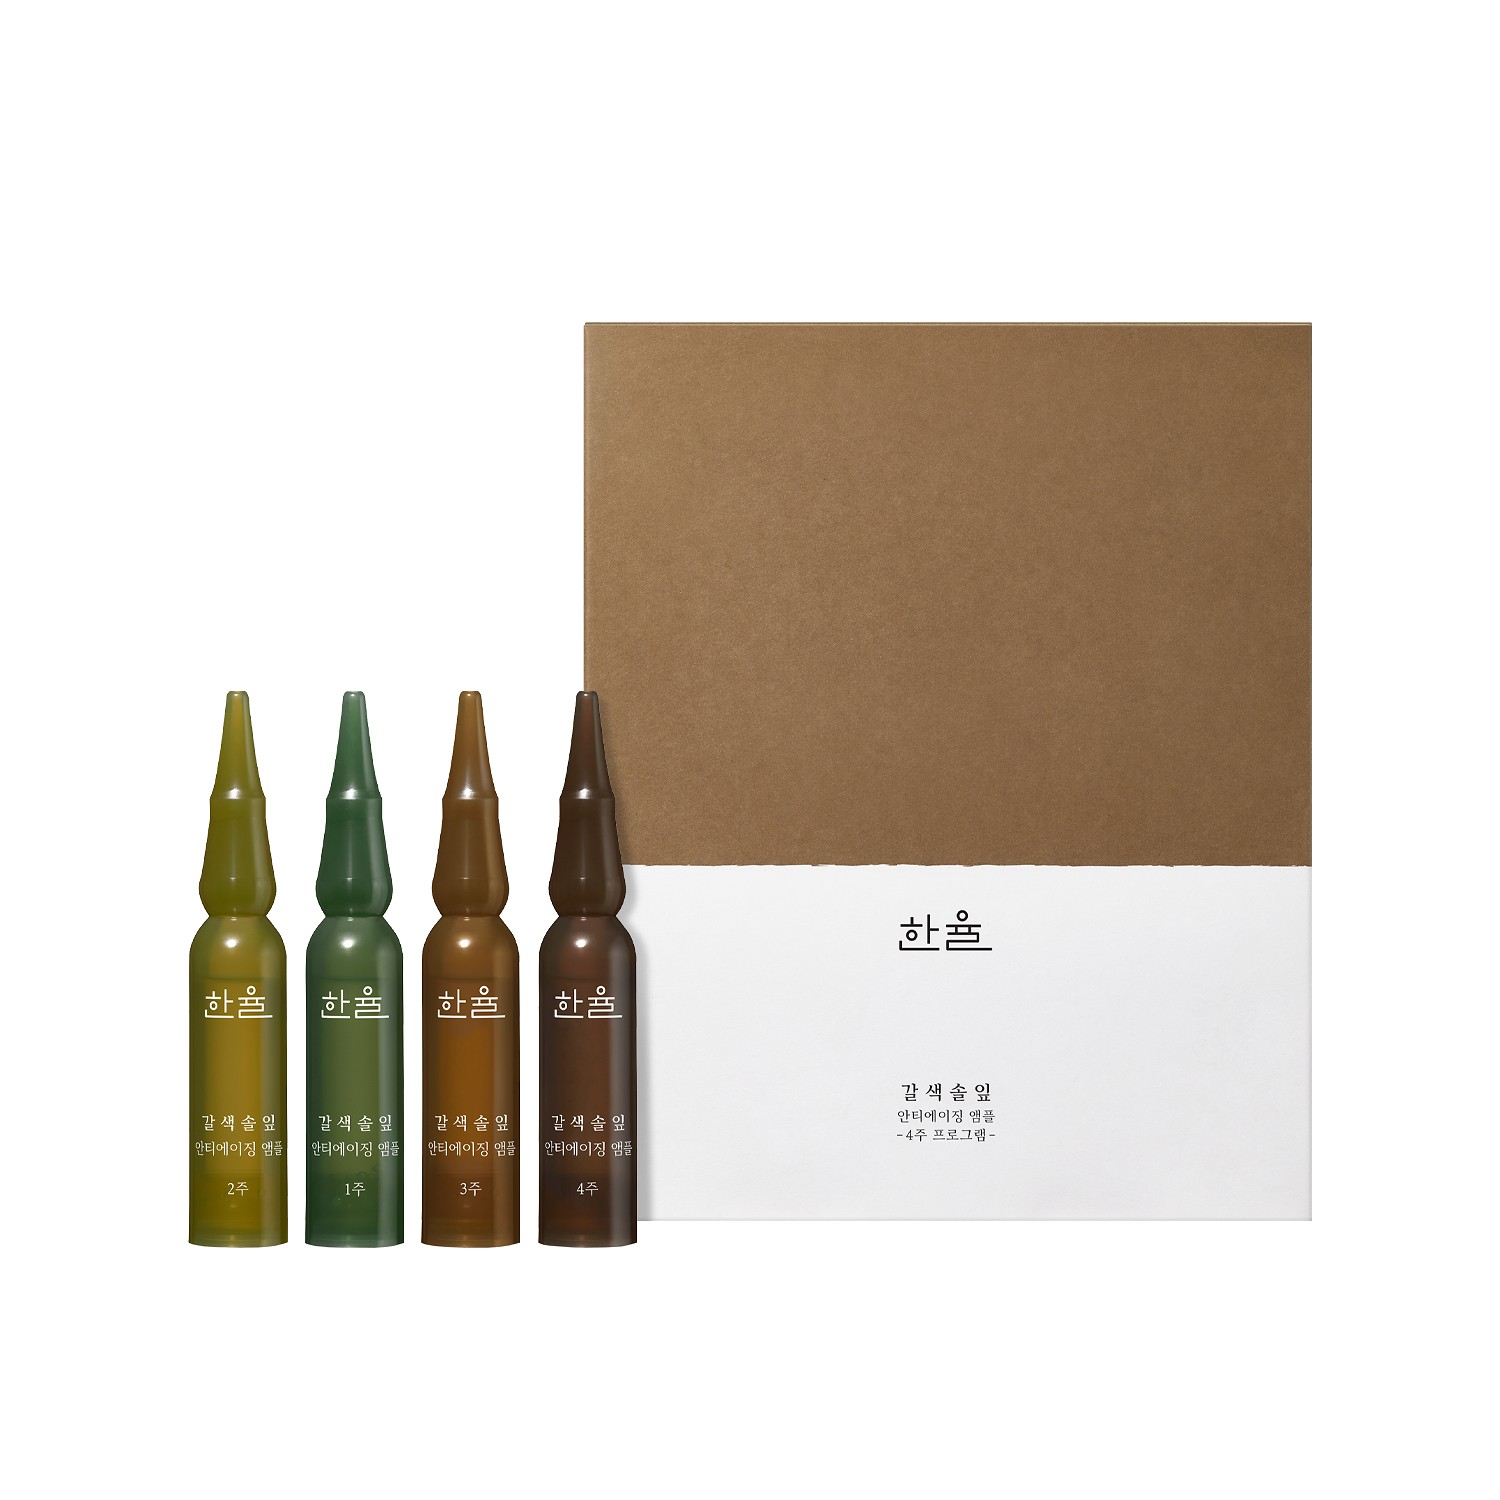 BROWN PINE LEAVES ANTI-AGING CONCENTRATE 2ml*28